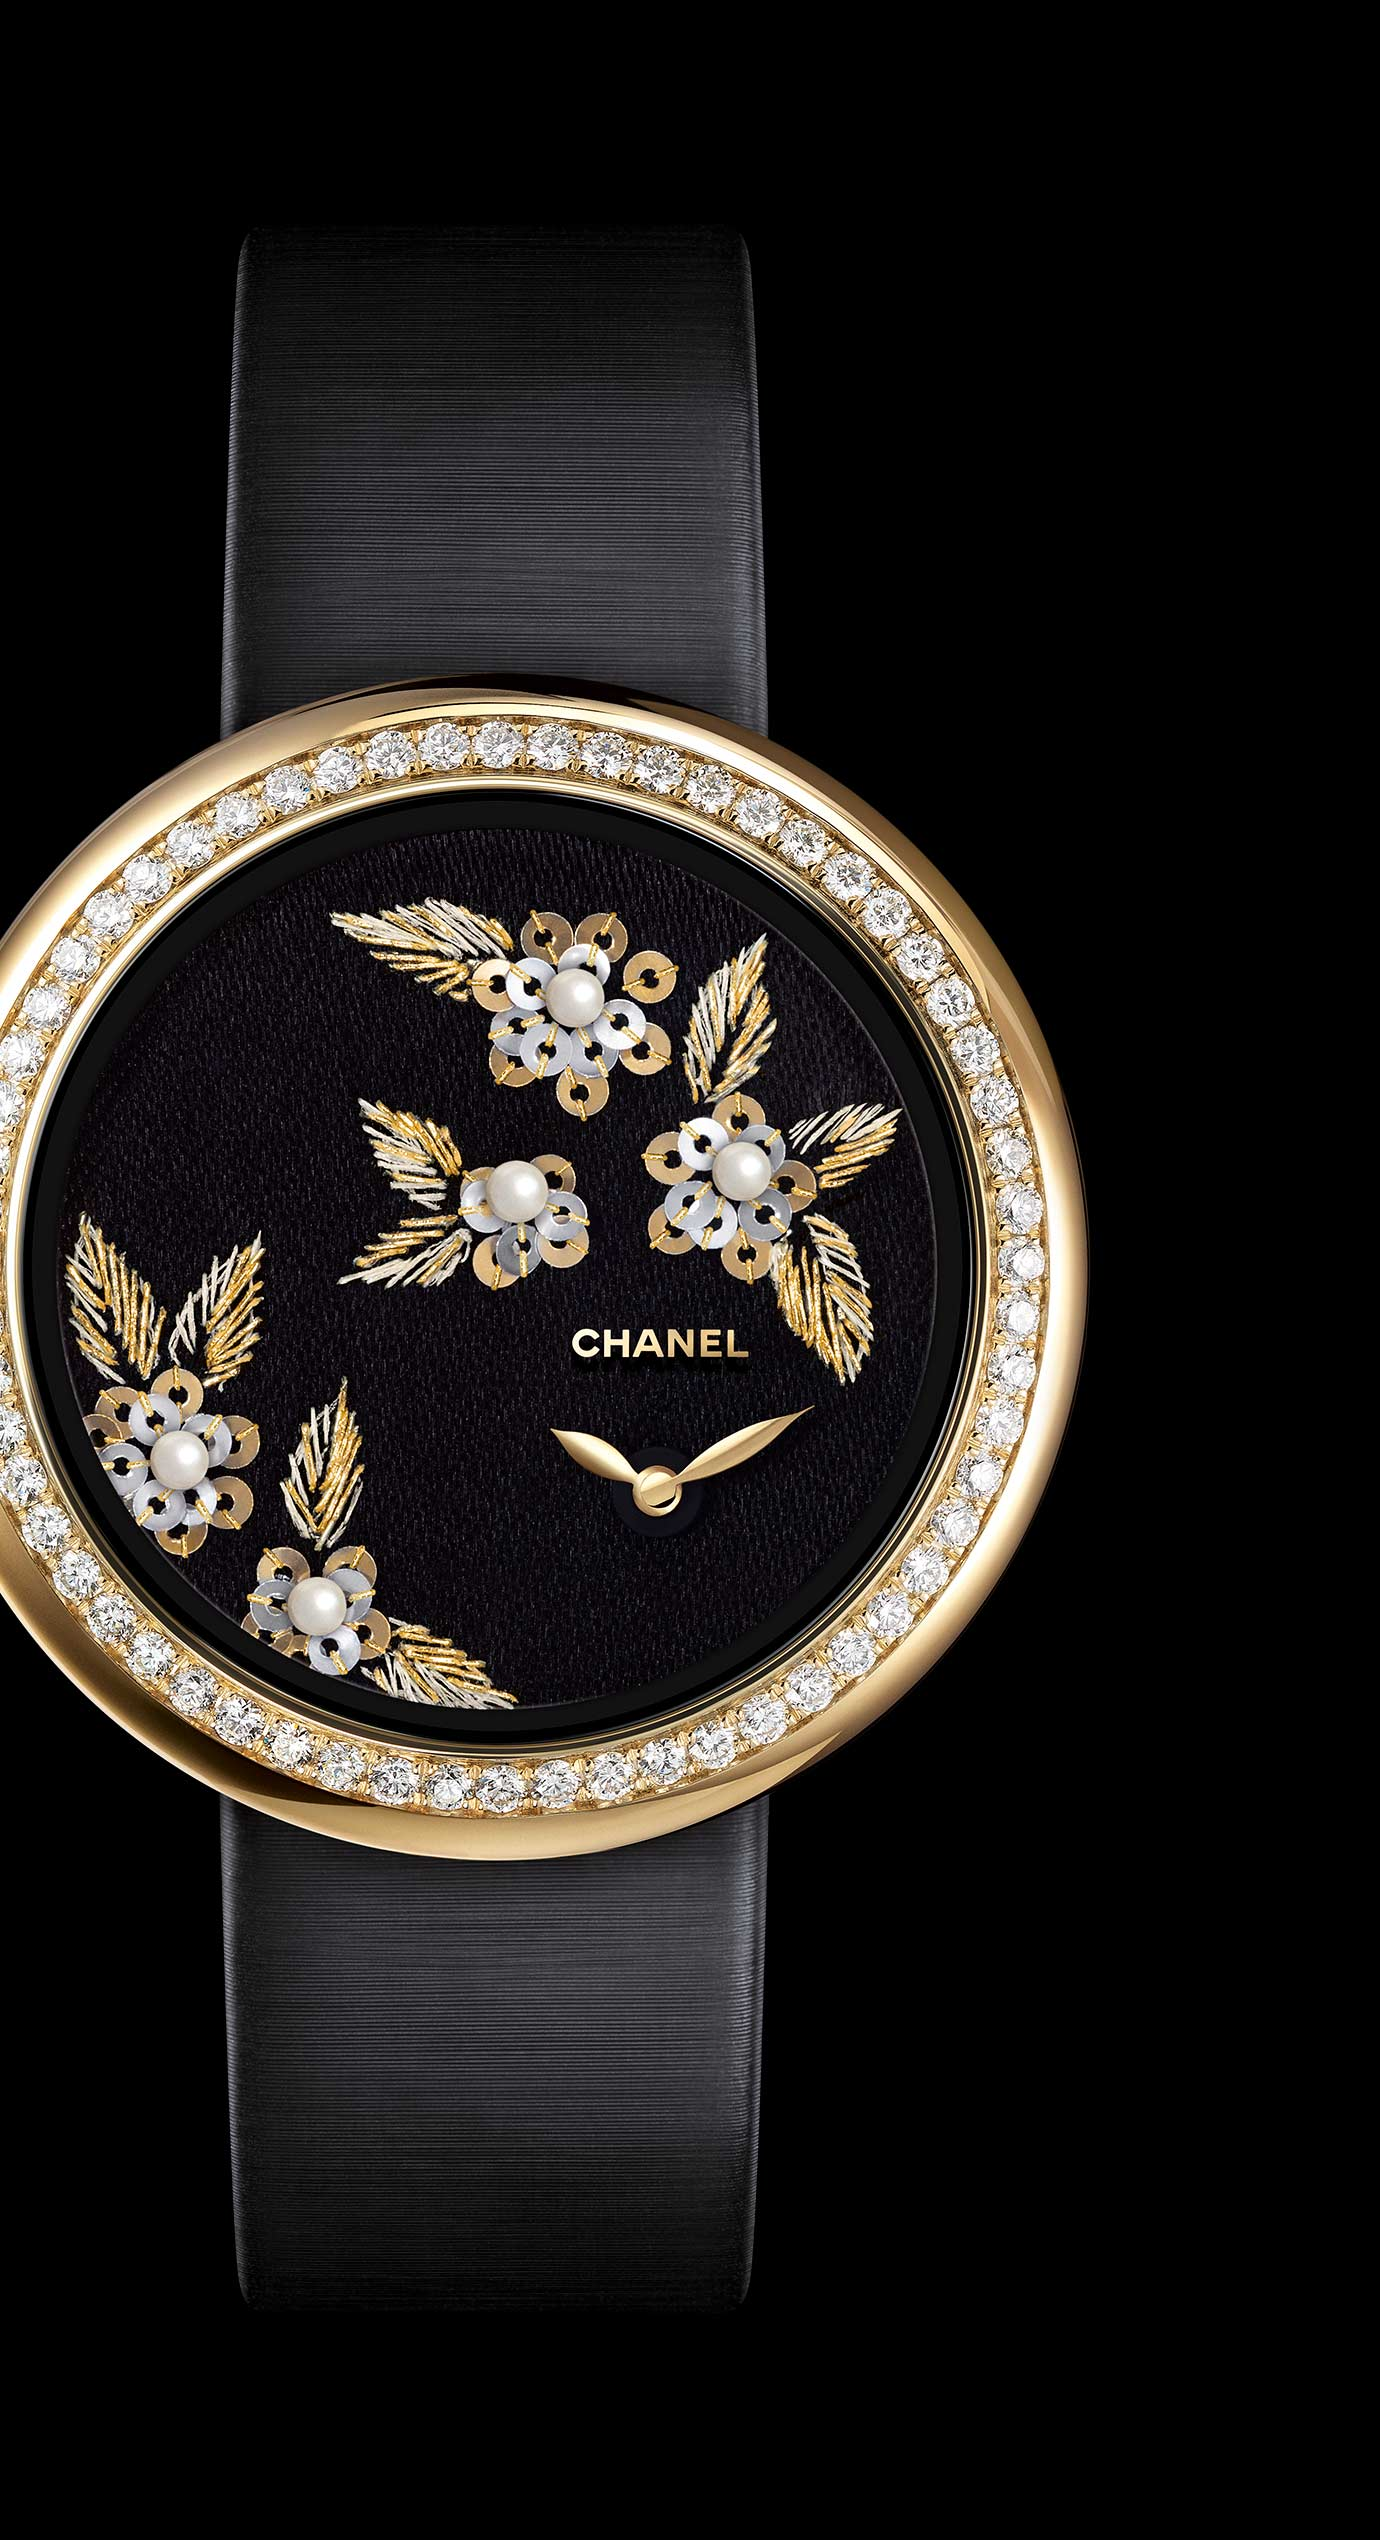 Mademoiselle Privé watch with gold thread camellias, fine pearls and glass beads - Lesage embroidery - Enlarged view